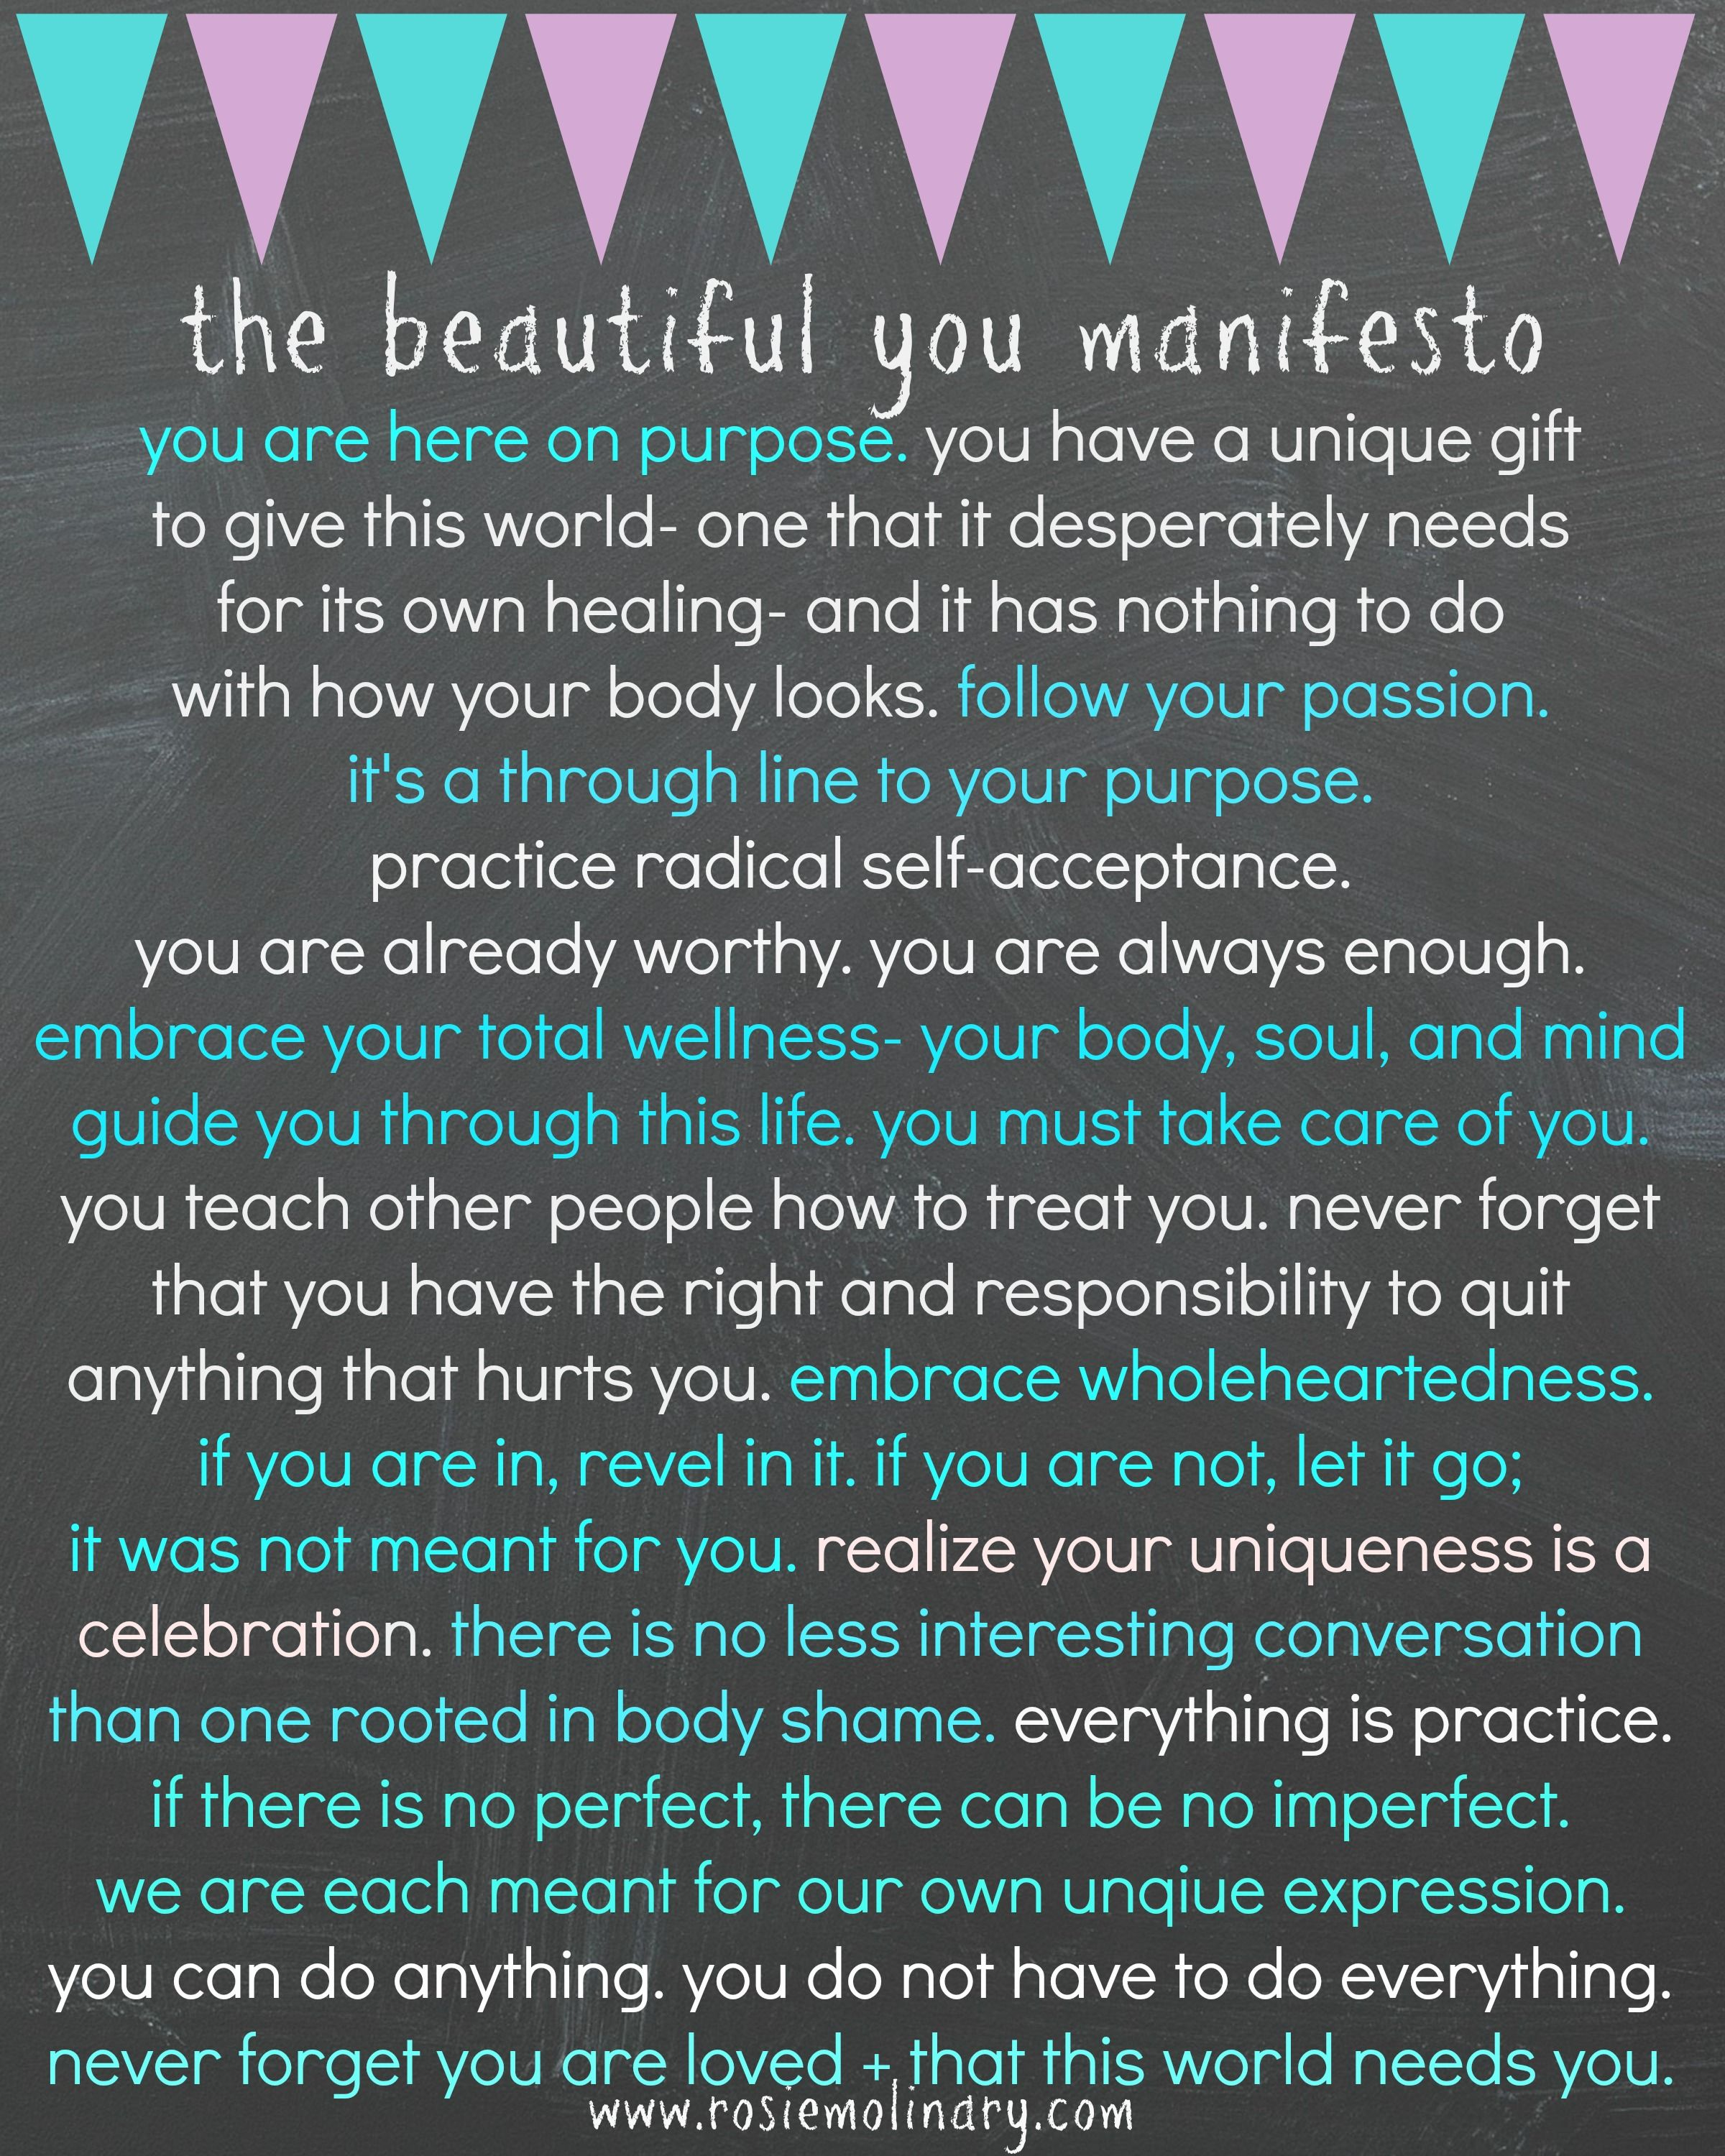 Finals Quotes Prepossessing Beautiful You Manifesto Final  True Wisdom  Pinterest  Finals . Inspiration Design